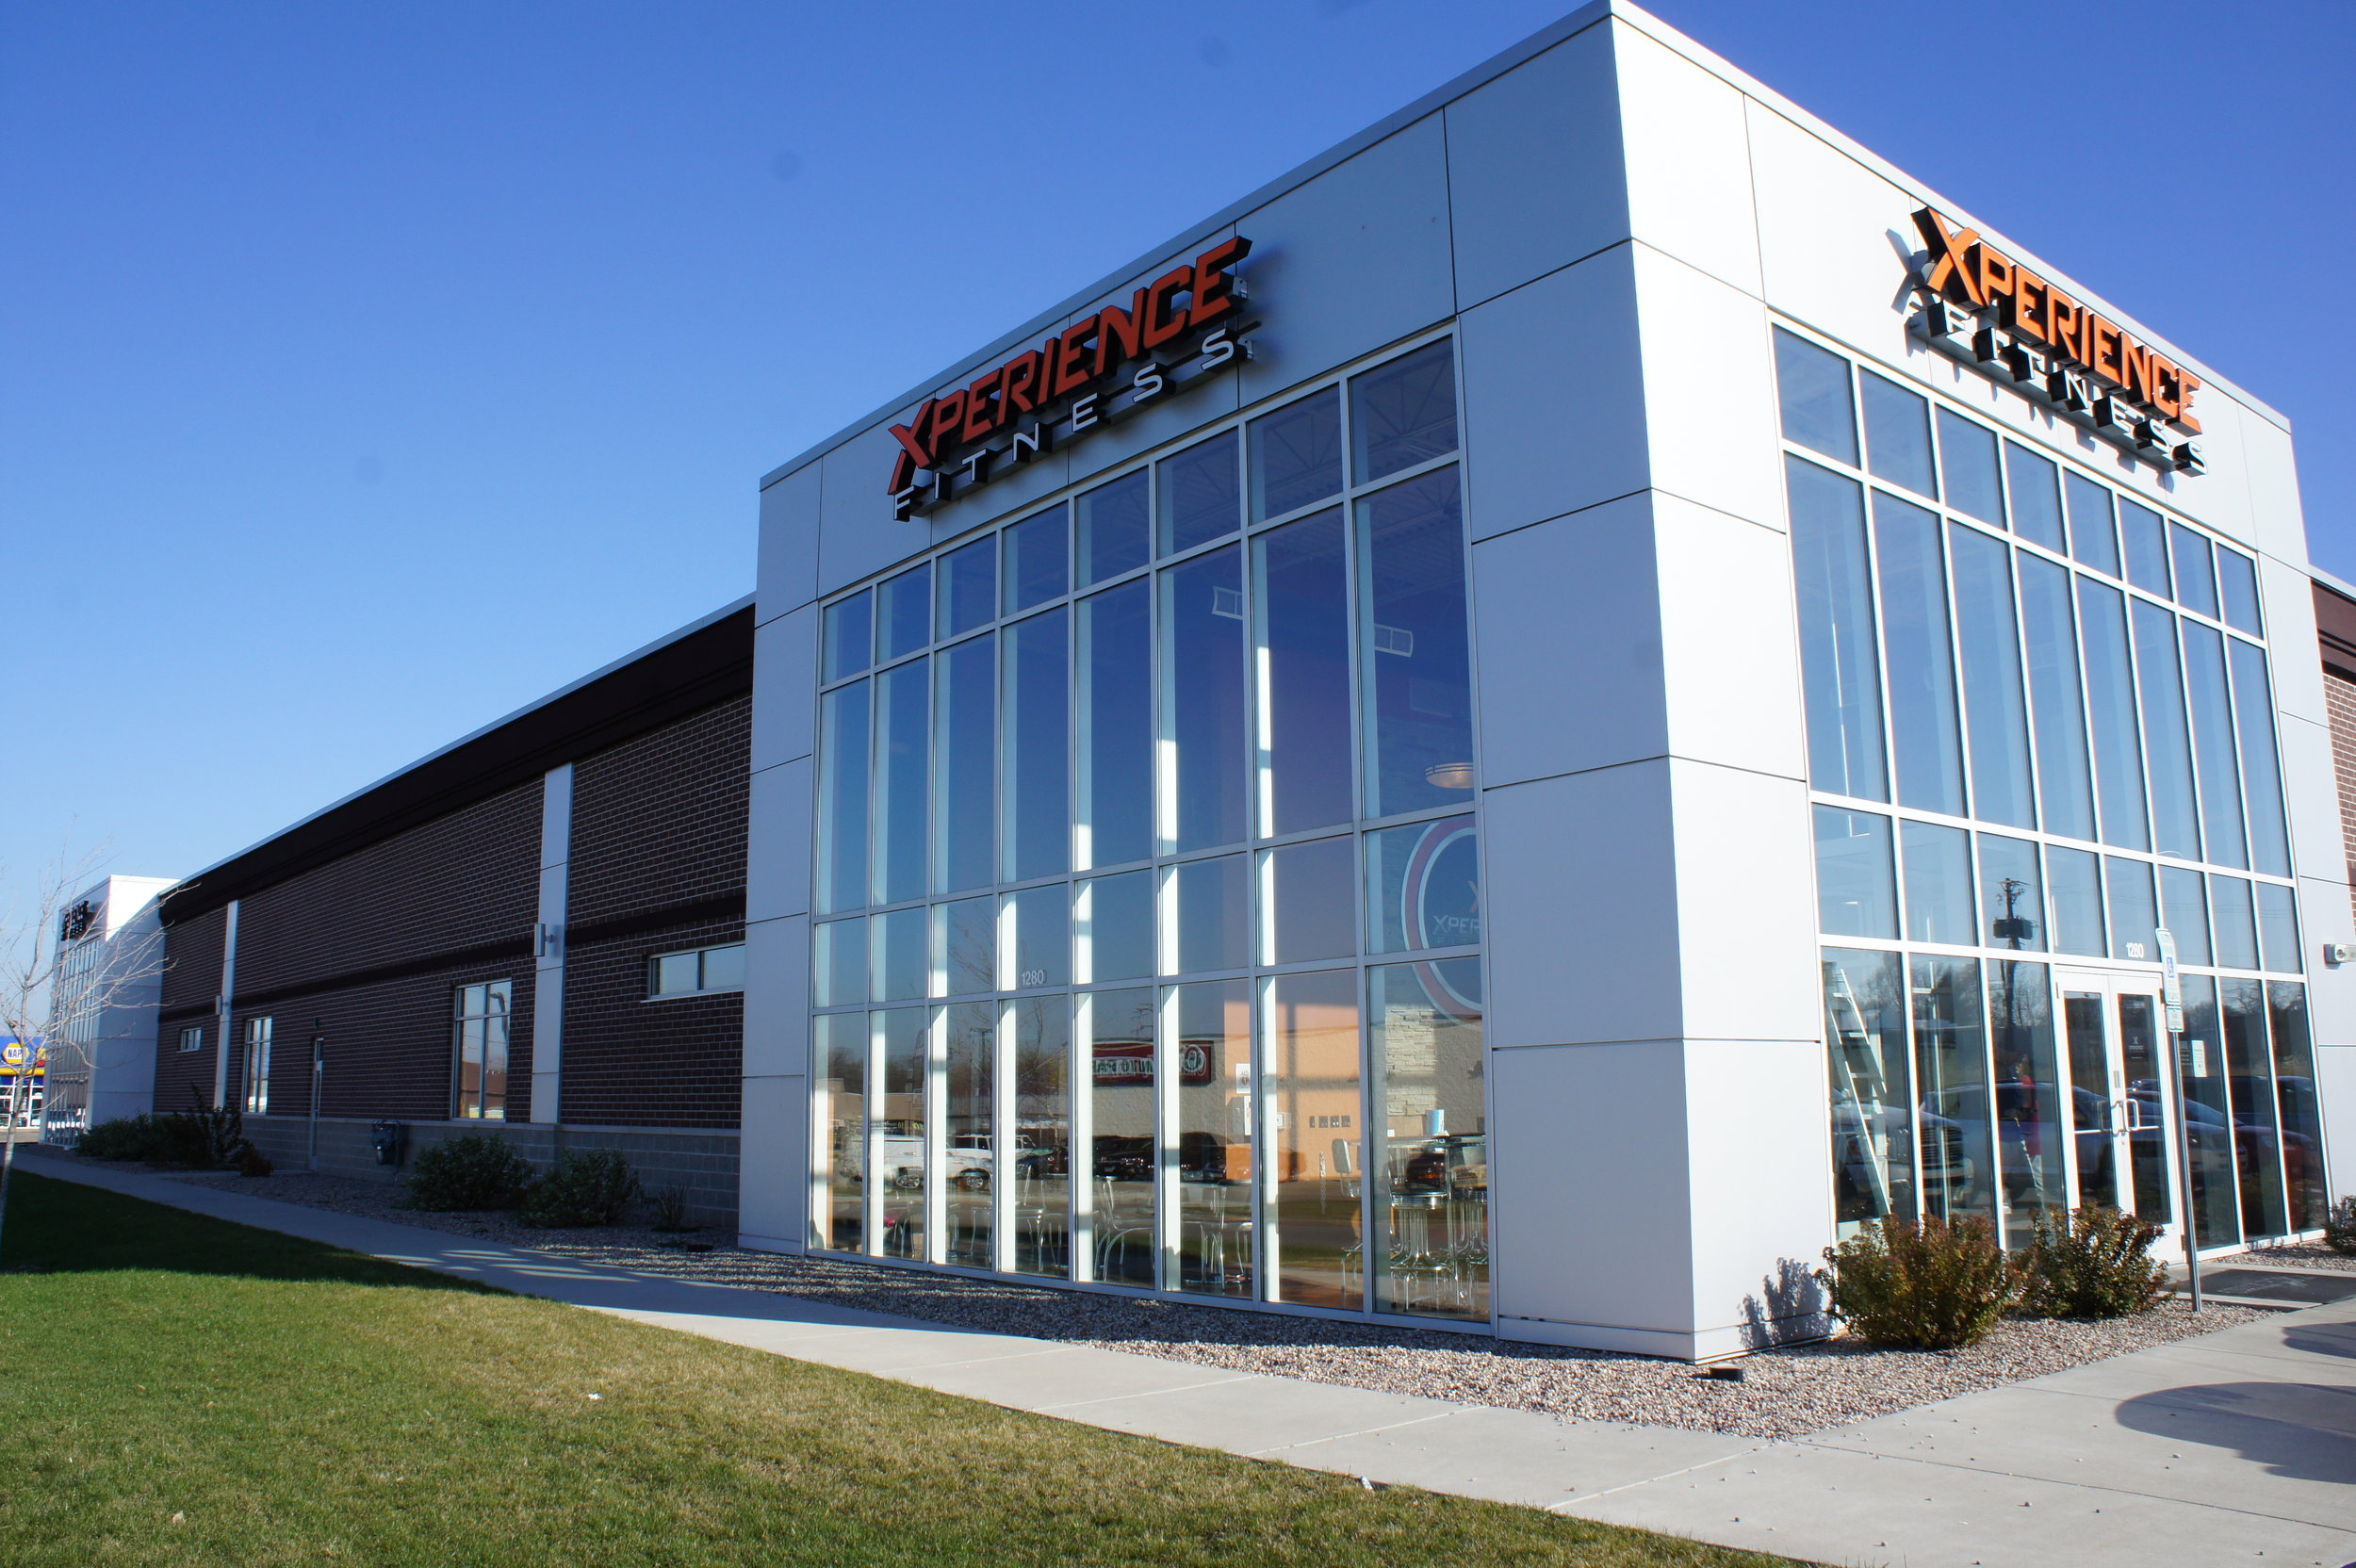 XPERIENCE FITNESS - APPLETON, WISCONSIN